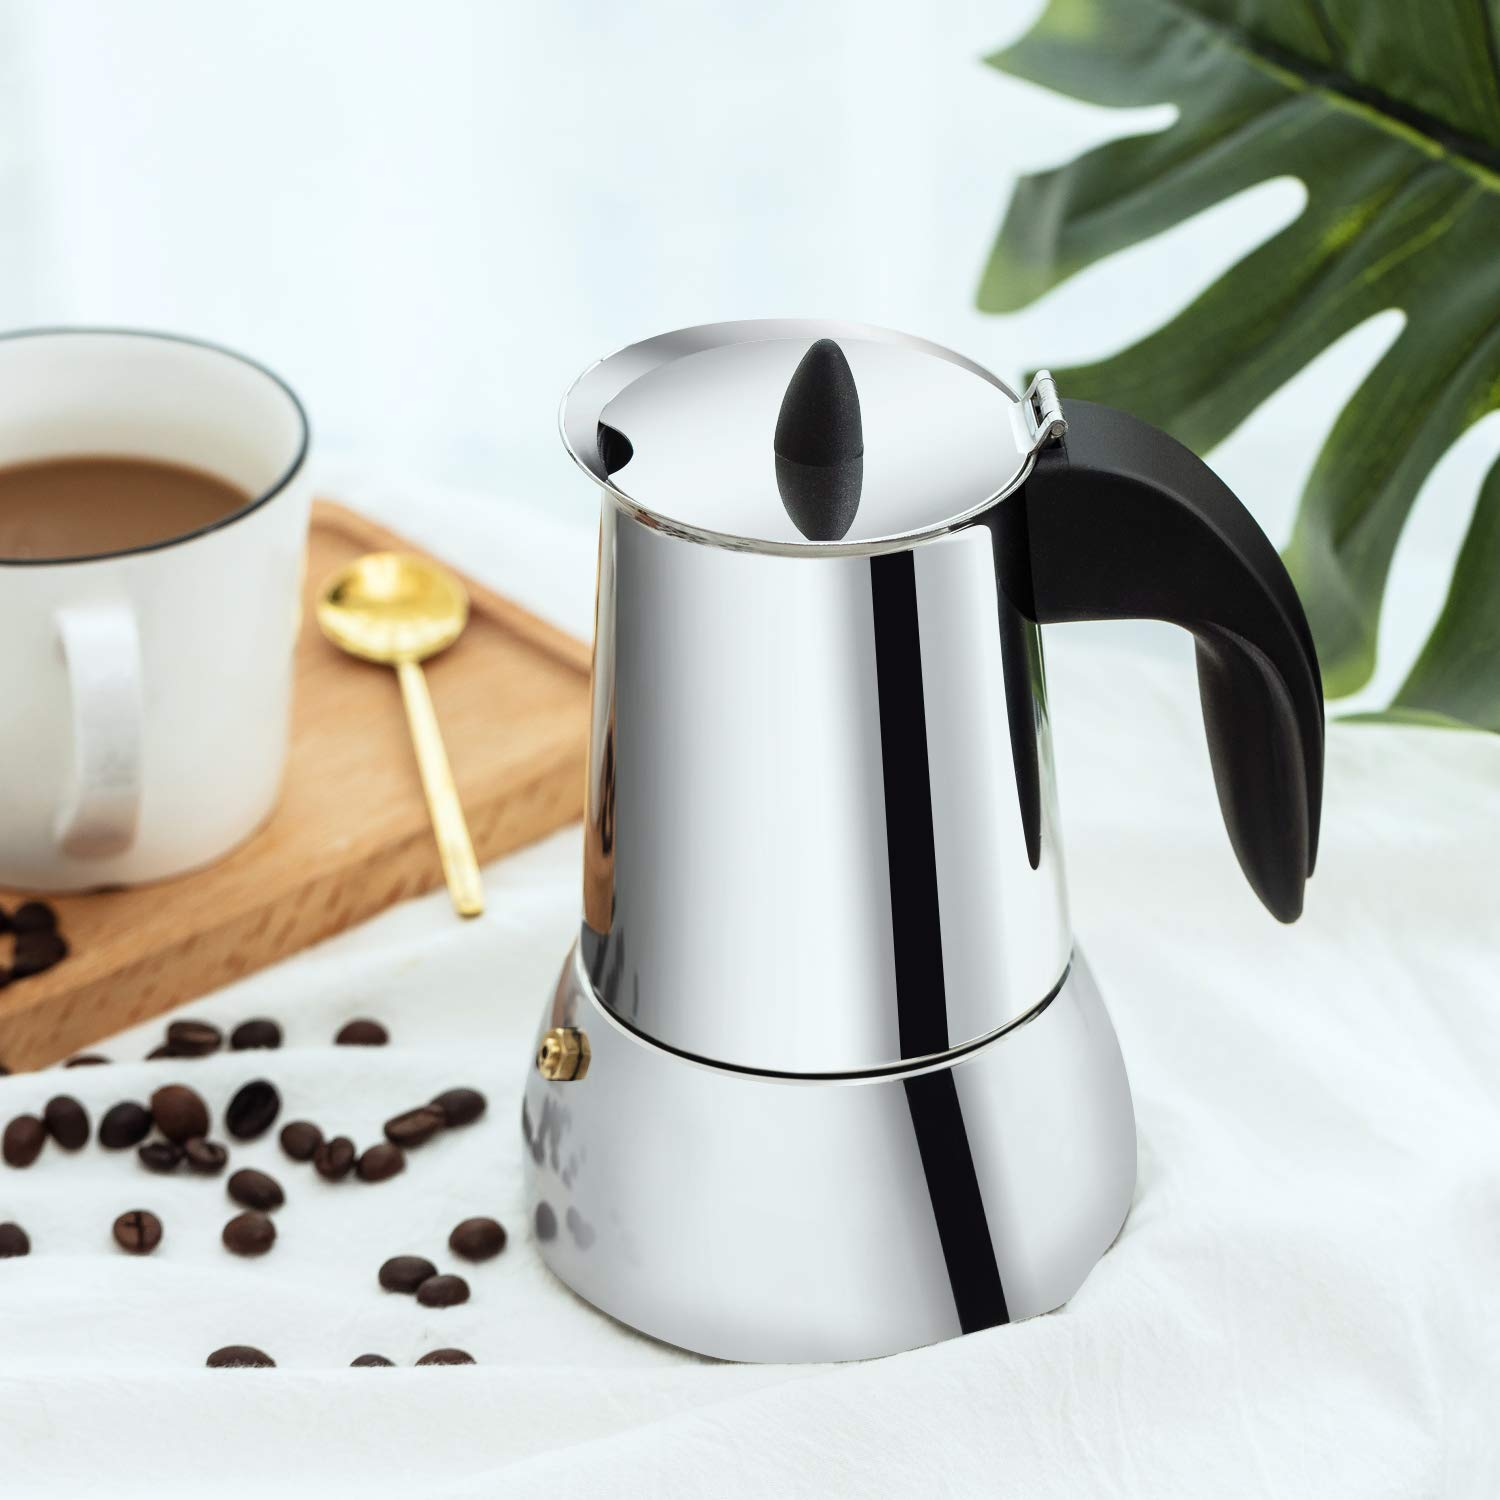 Mr. Rudolf 18/10 Stainless Steel Stovetop Espresso Coffee Maker and Moka Pot 6 Cups